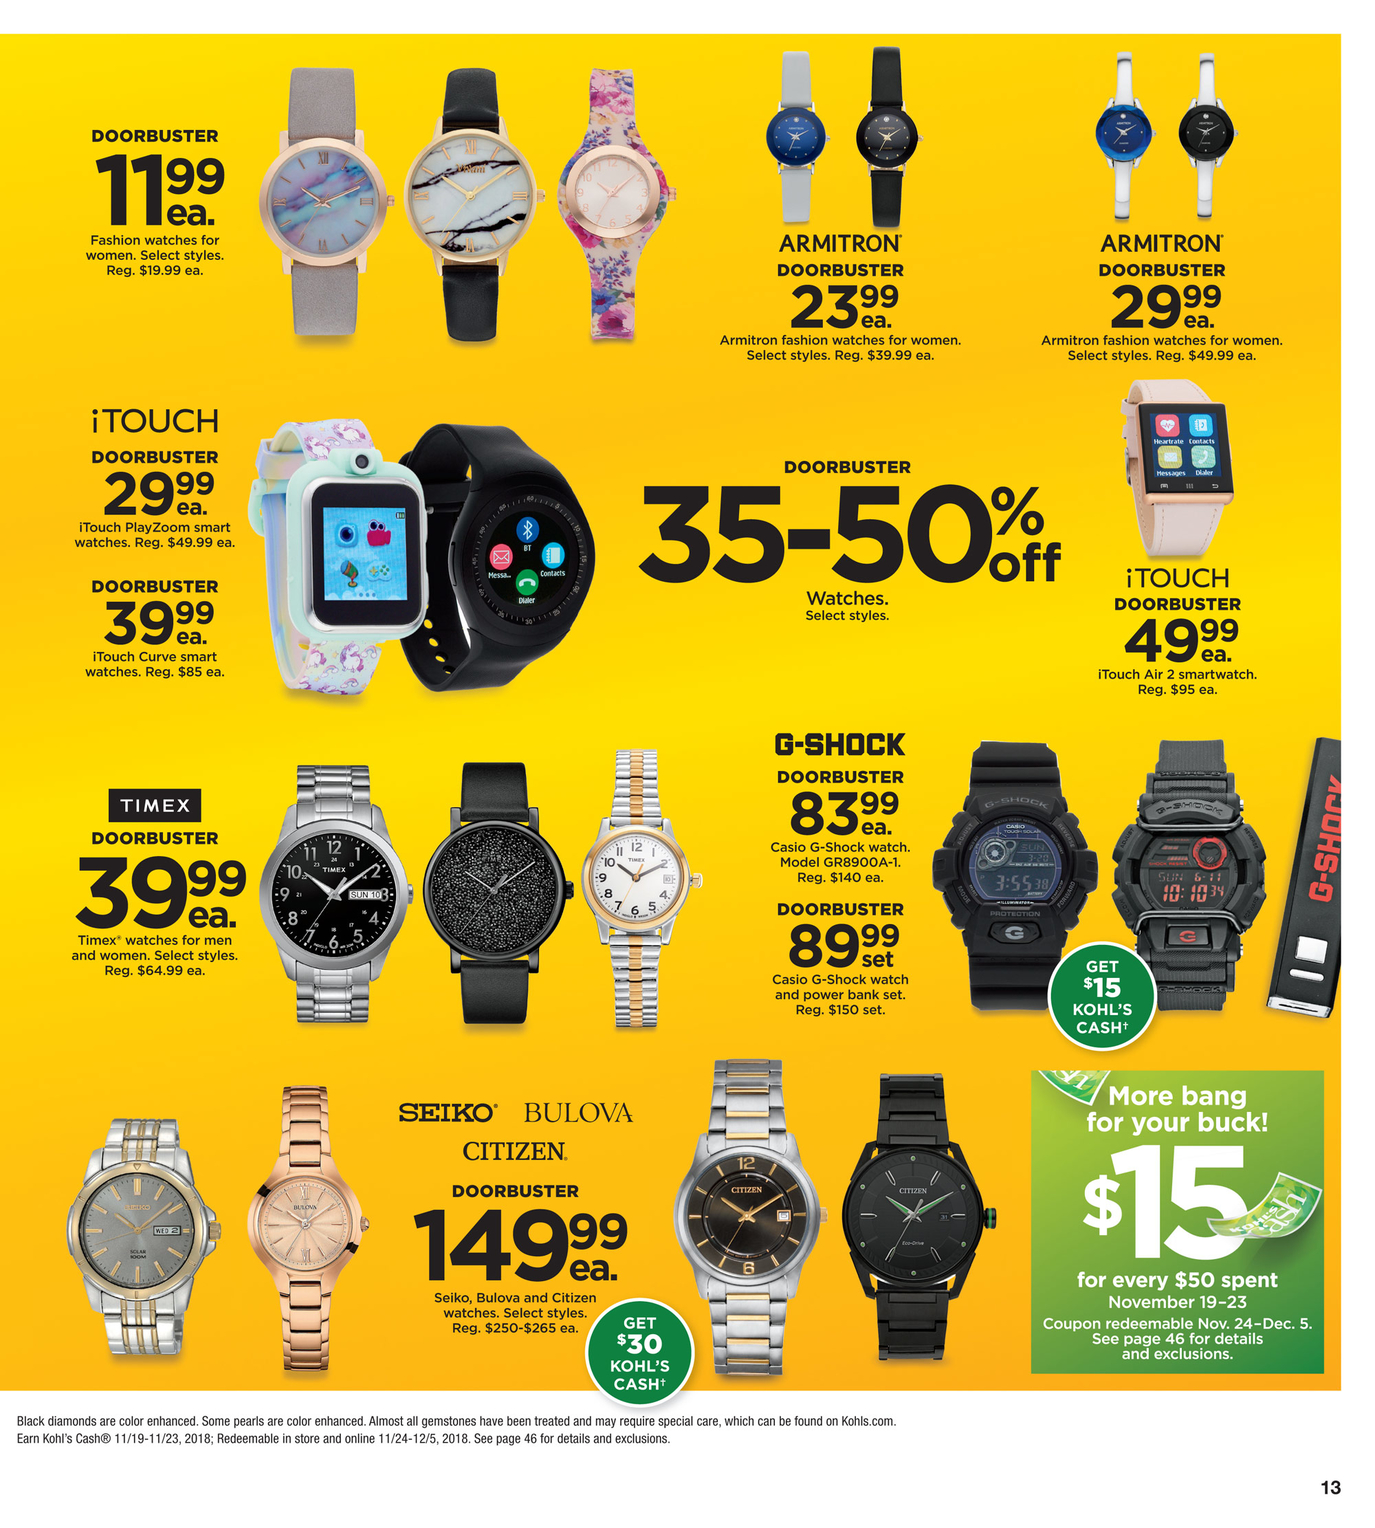 P13:  Watches